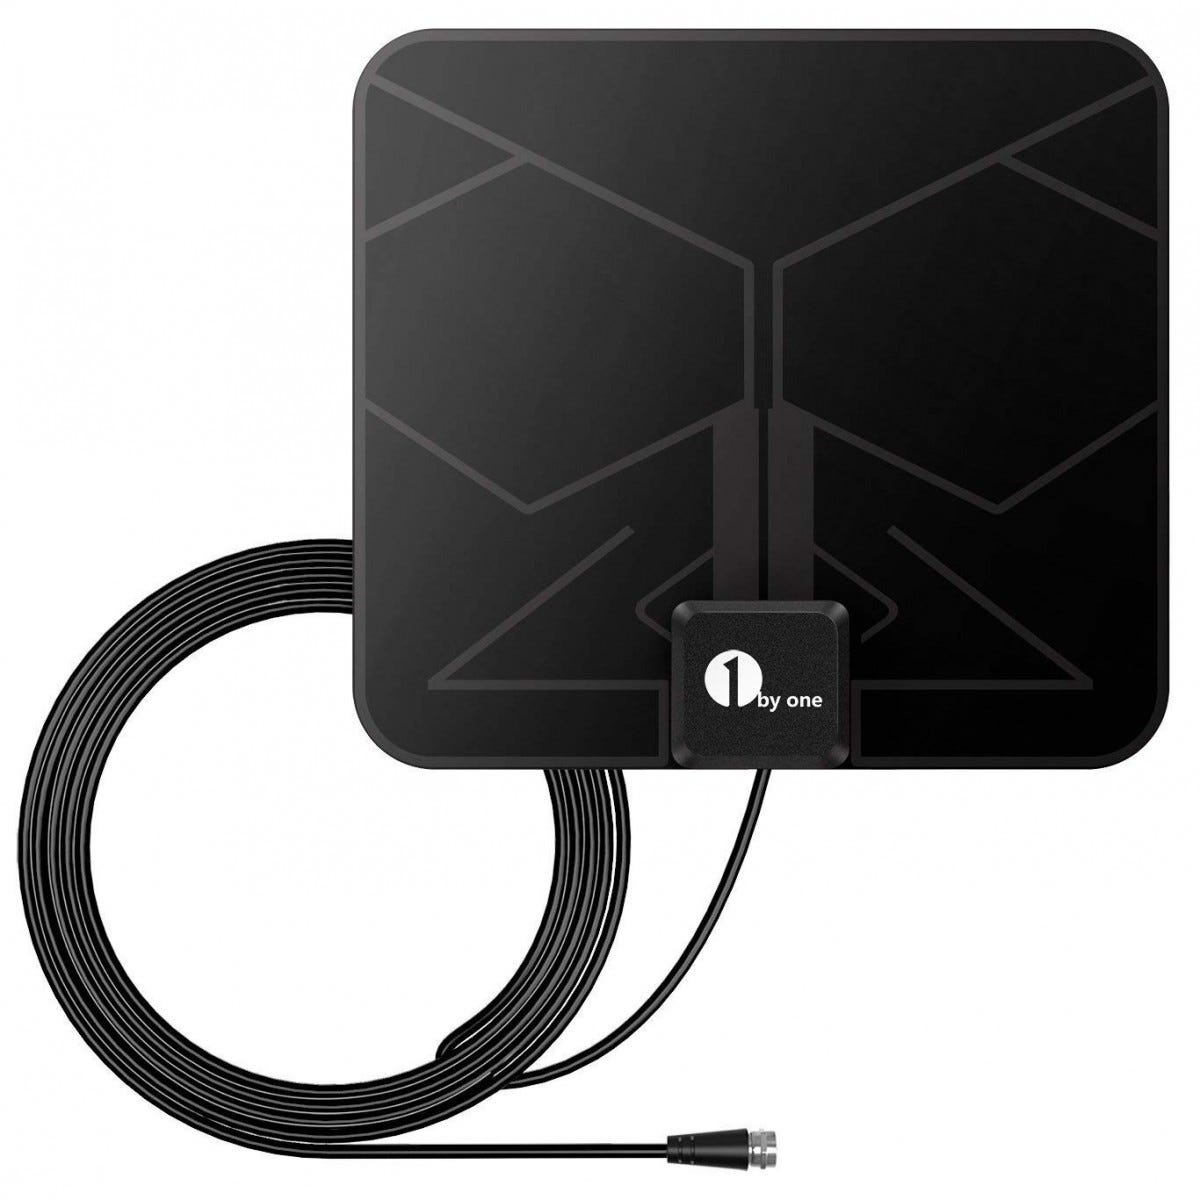 A standard digital TV antenna.